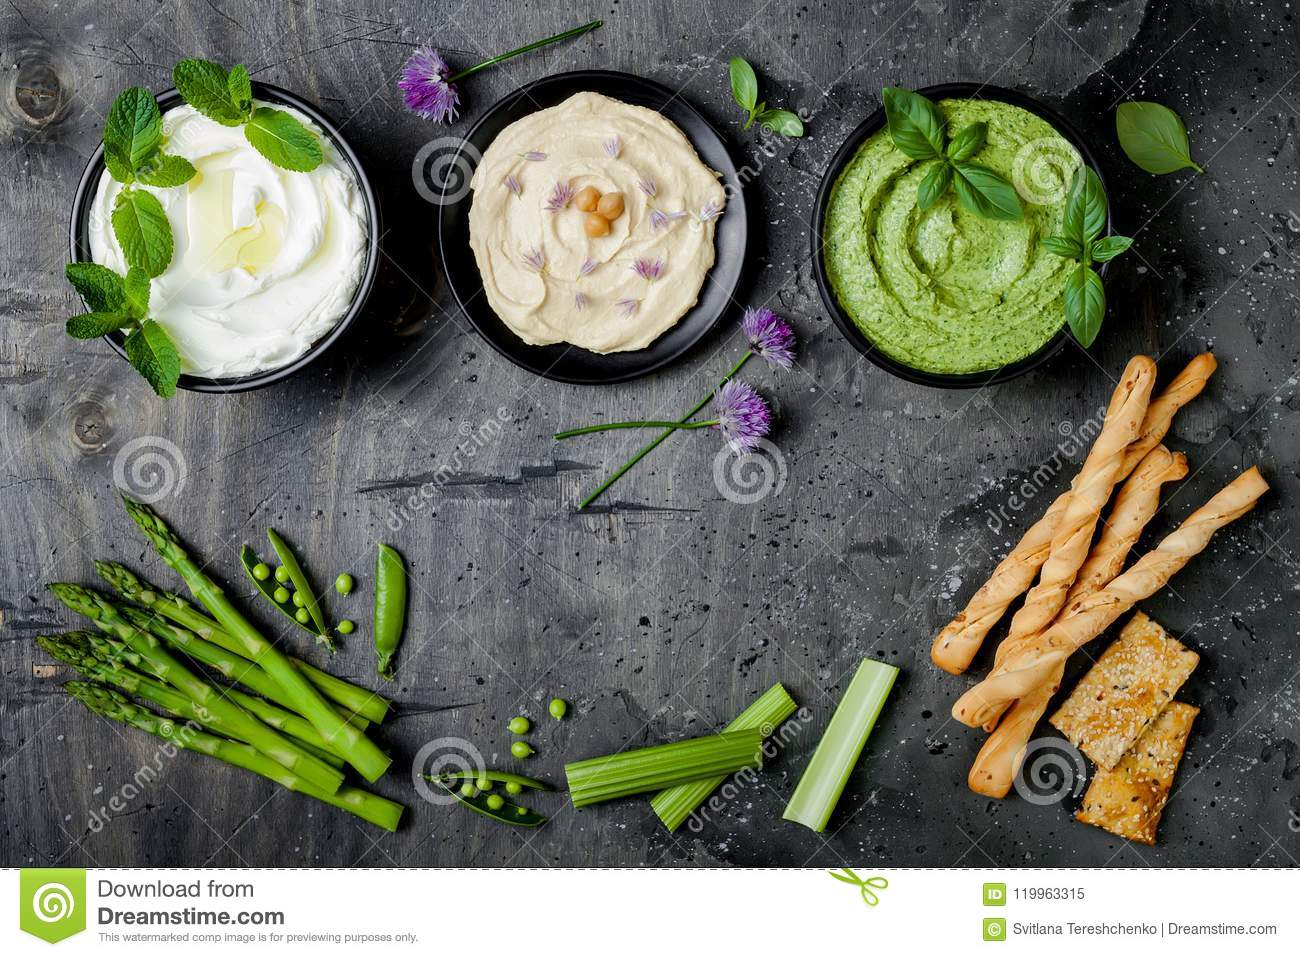 Green vegetables raw snack board with various dips. Yogurt sauce or labneh, hummus, herb hummus or pesto with crackers, grissini